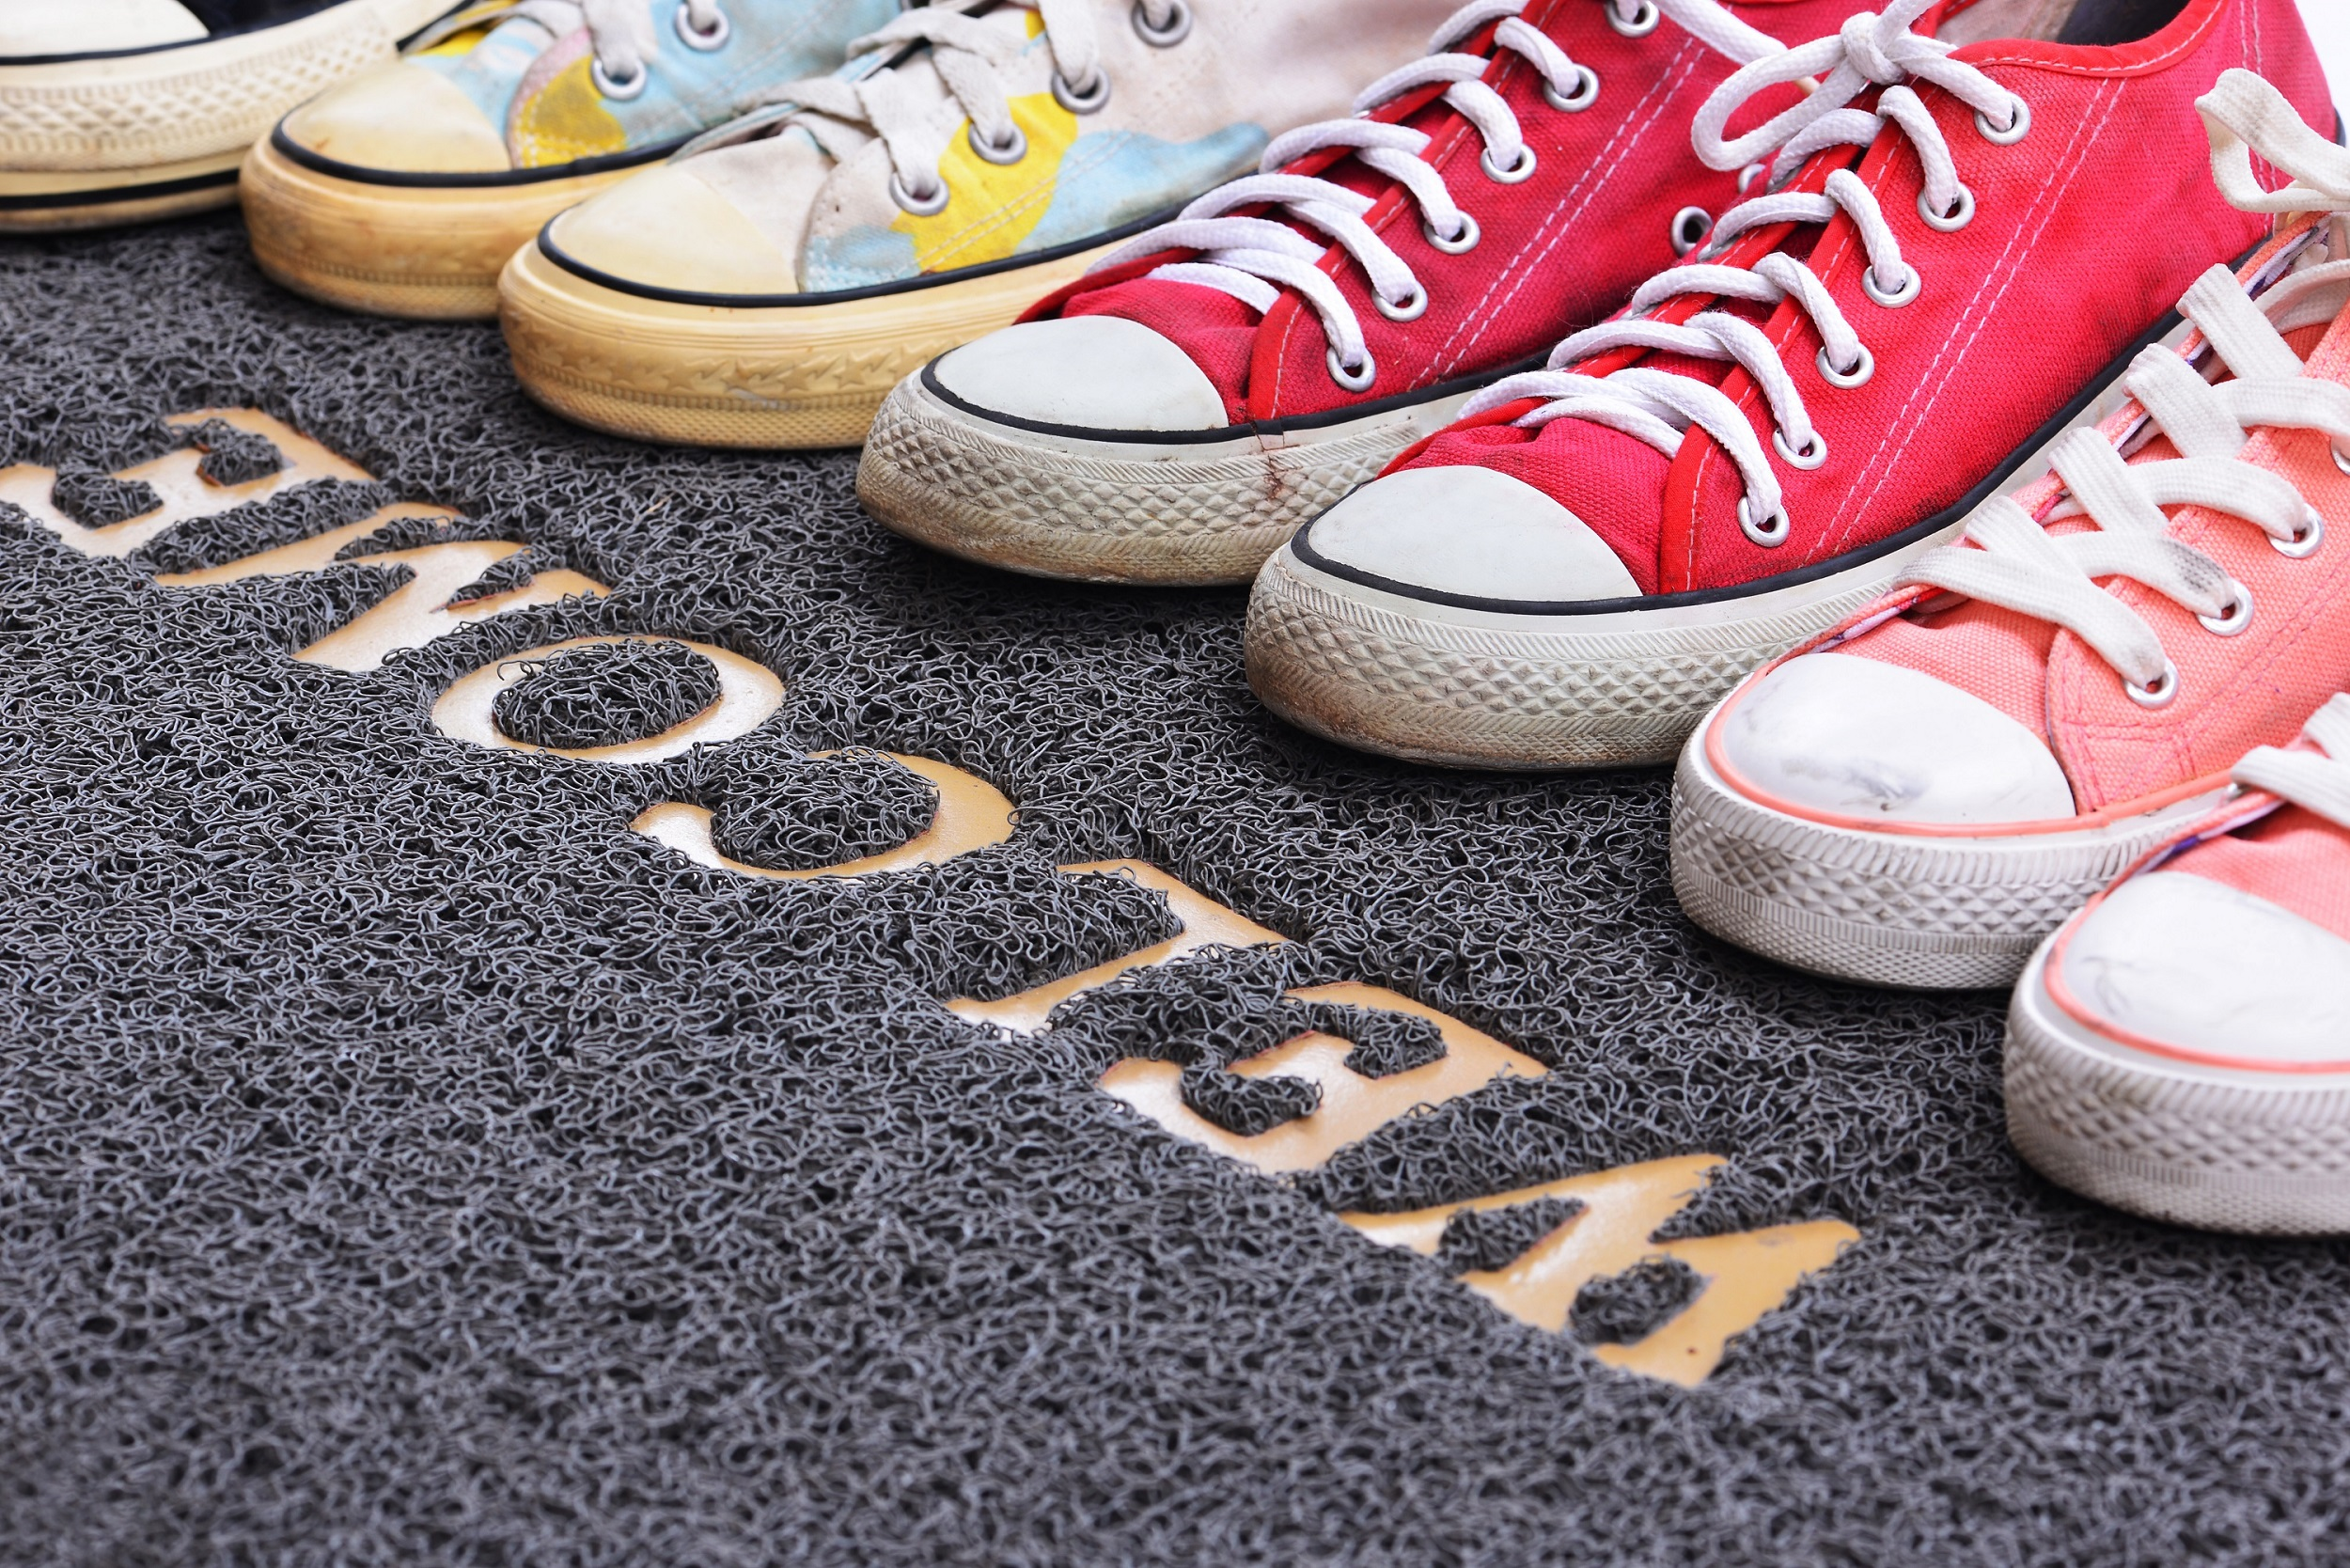 Converse Sneakers on Welcome Mat